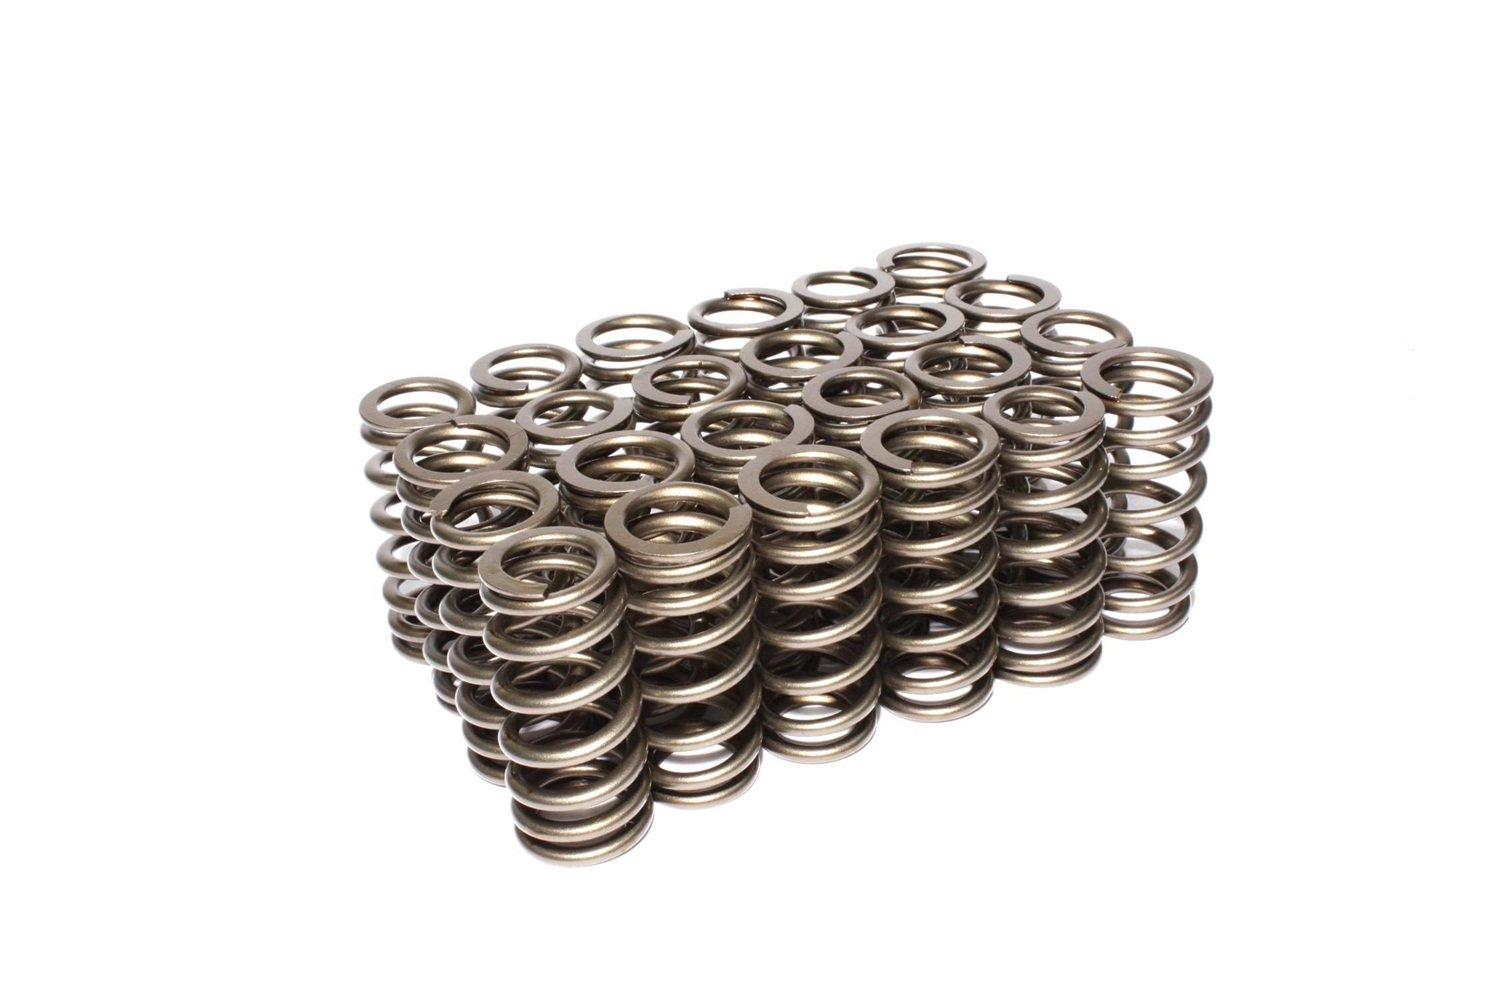 Competition Cams 26113-24 Beehive Valve Springs for Ford 4.6L and 5.4L Modular 3 Valve Engines COMP Cams